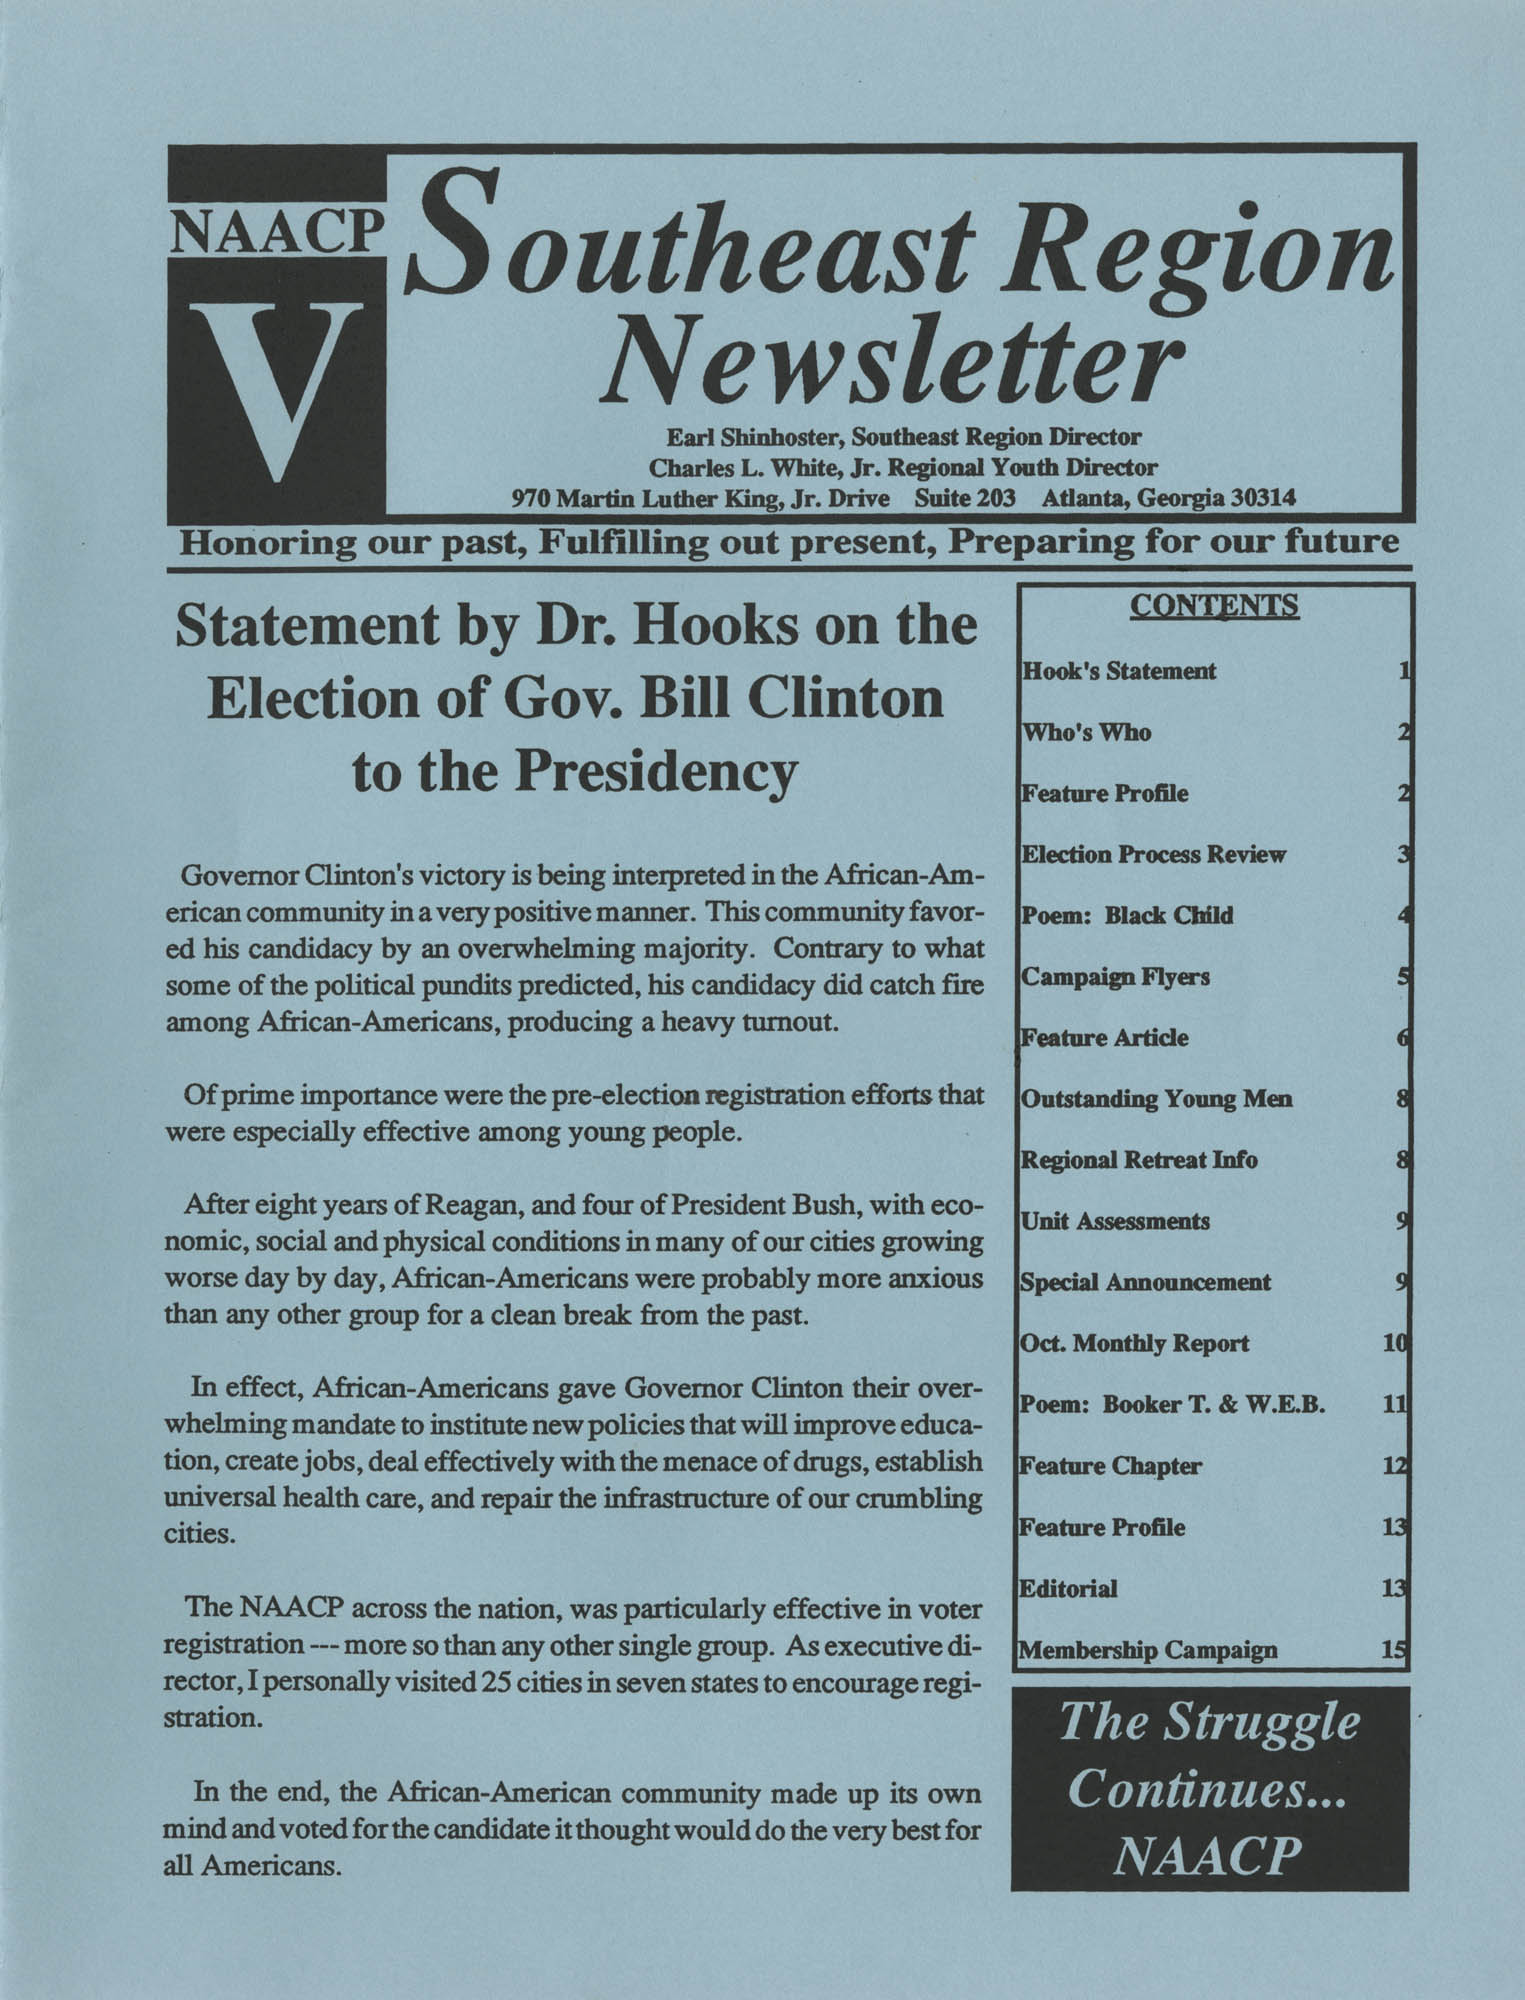 NAACP V, Southeast Region Newsletter, Page 1